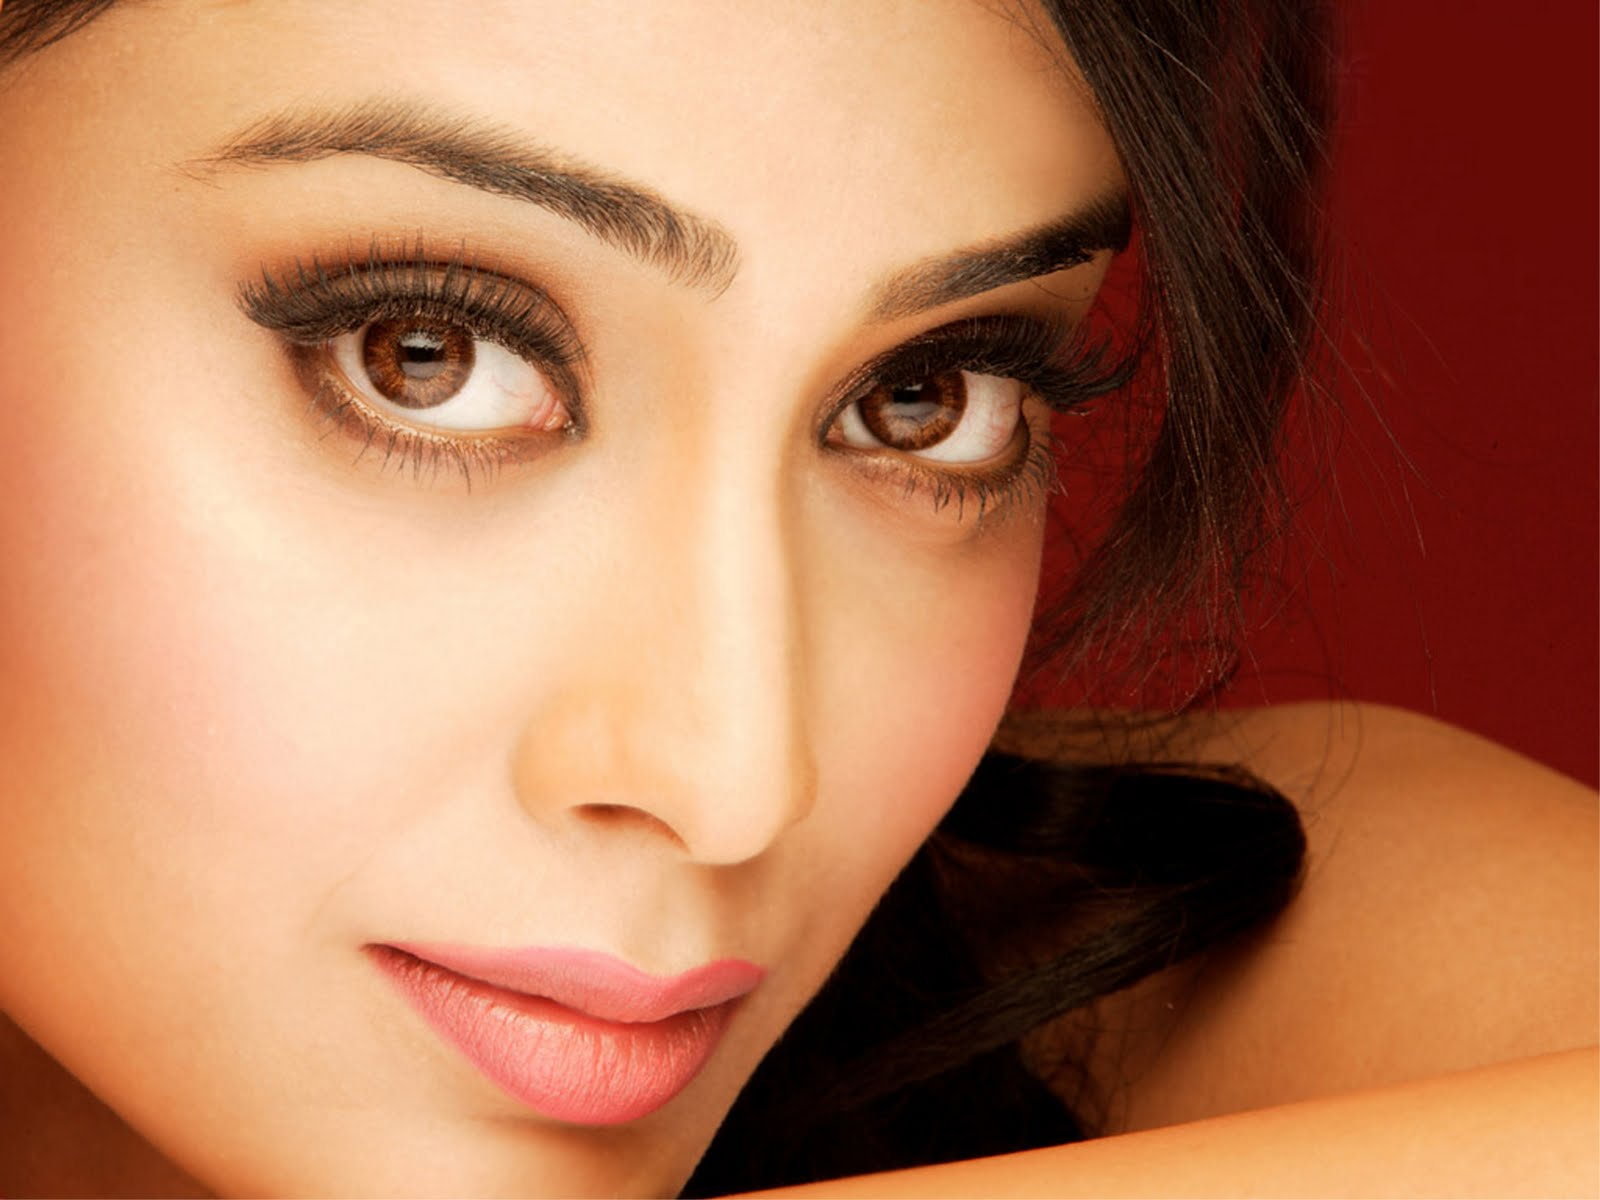 shriya saran face hd wallpaper 53931 1600x1200px